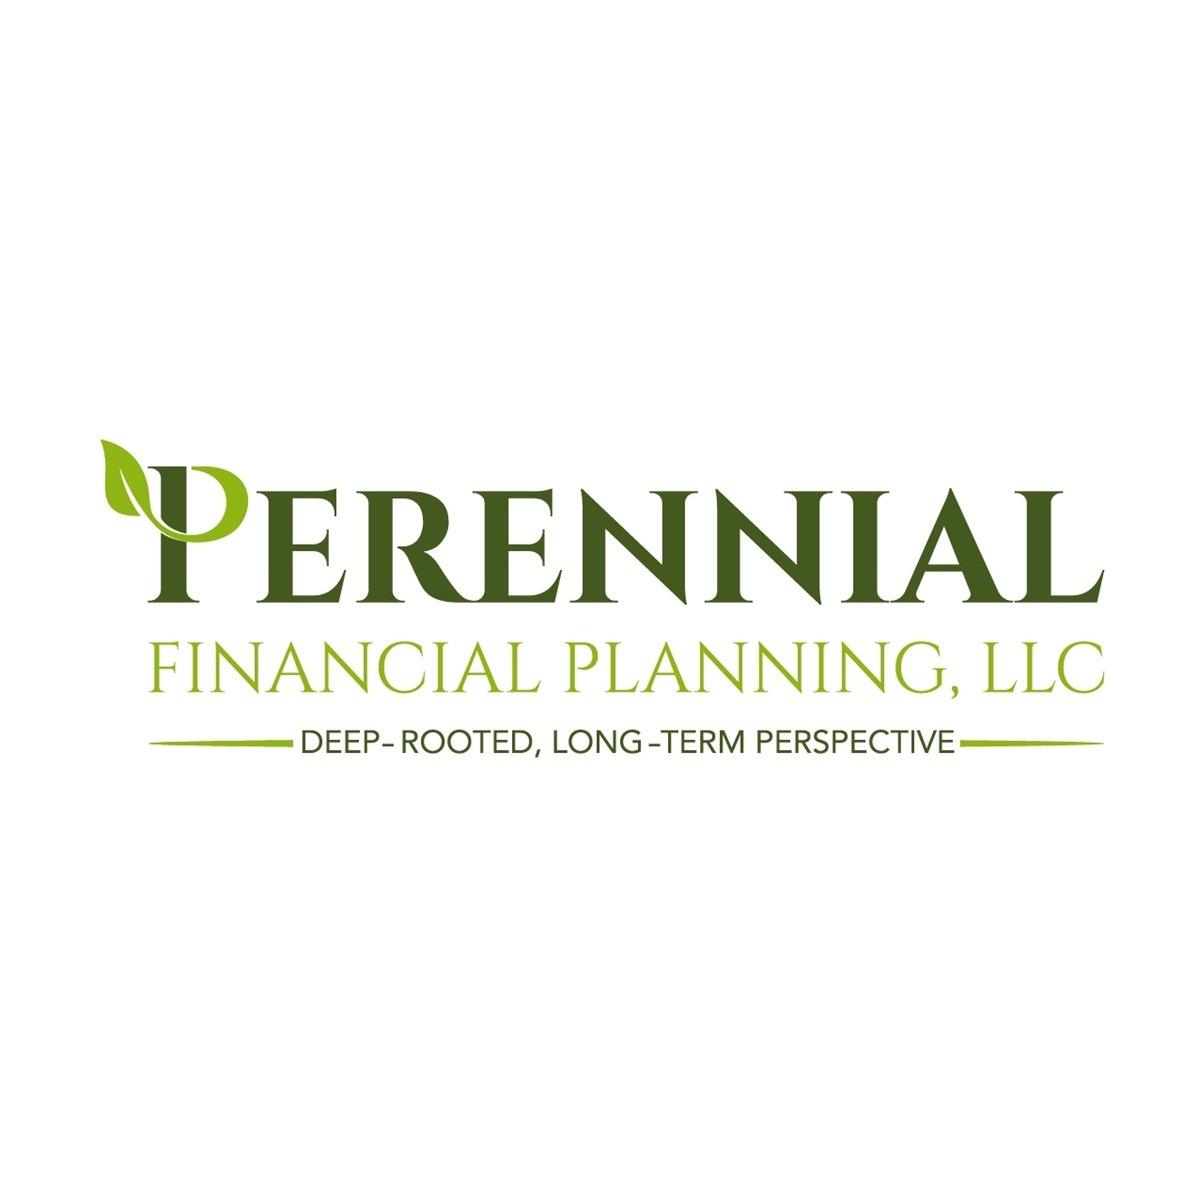 Perennial Financial Planning